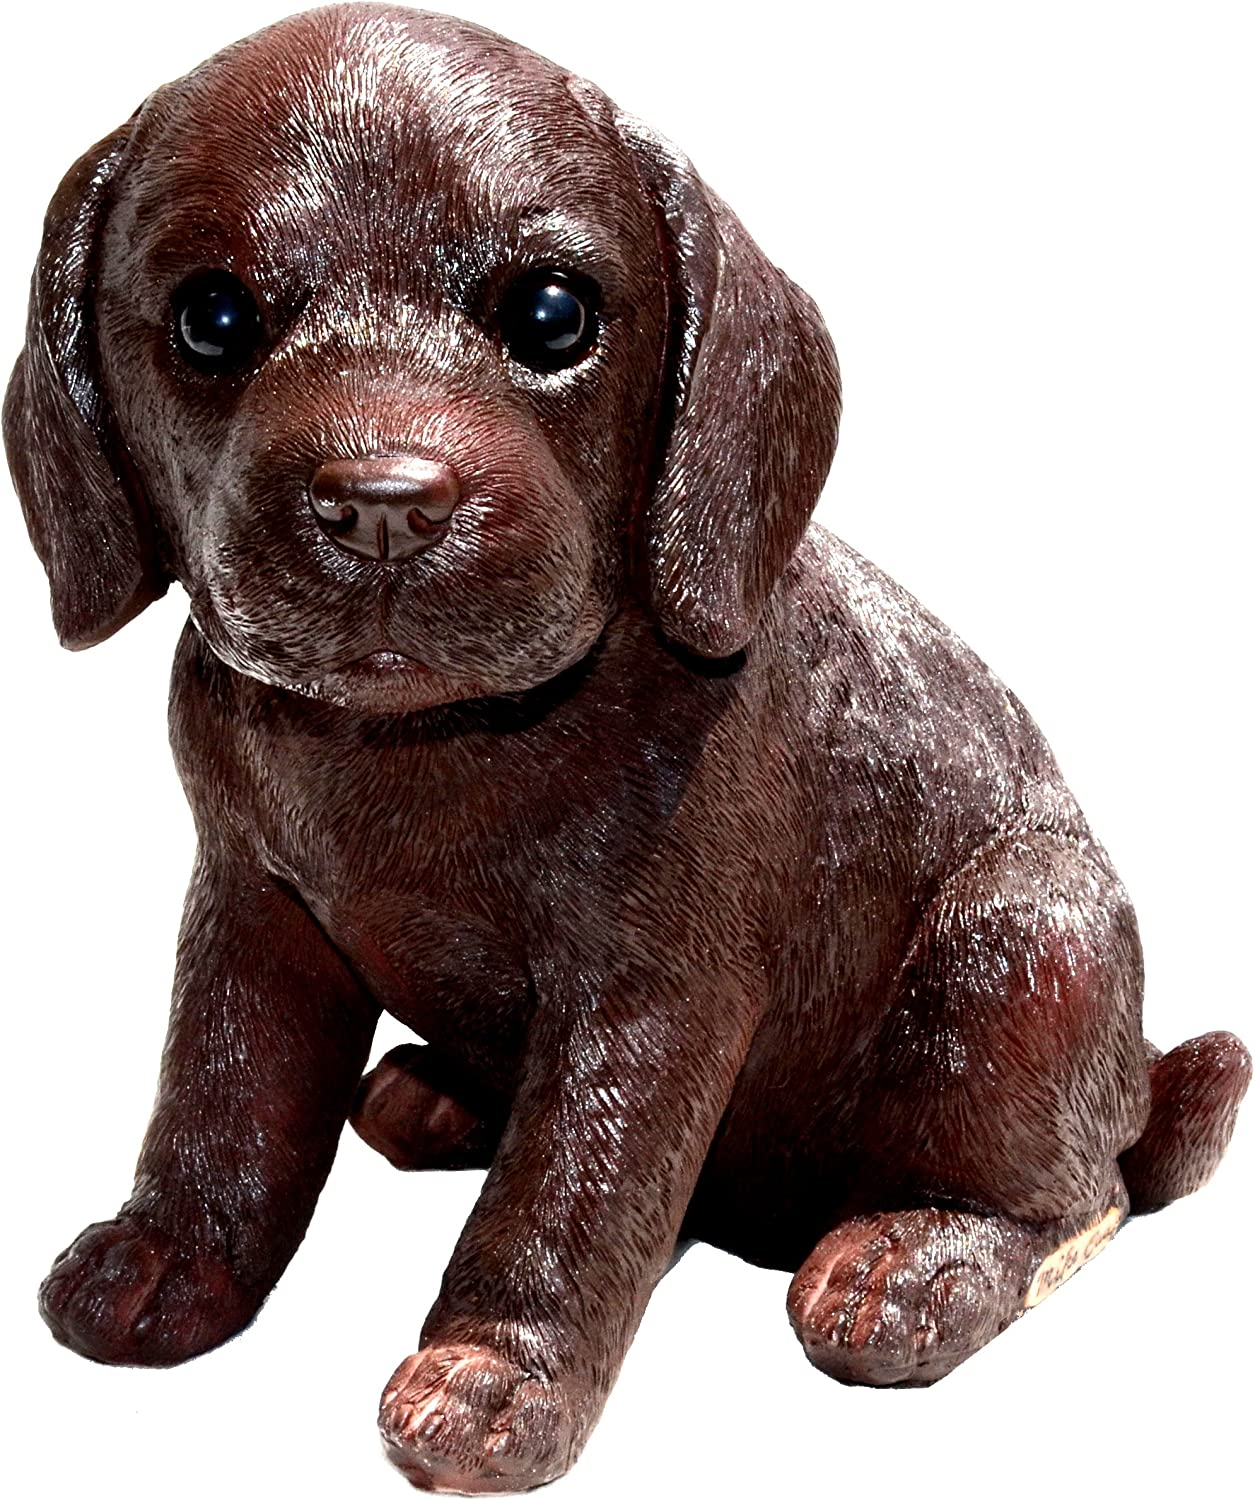 Michael Carr Designs Chocolate Labrador S Fudge Puppy Love Outdoor Dog Figurine for Gardens, patios and lawns (80101)